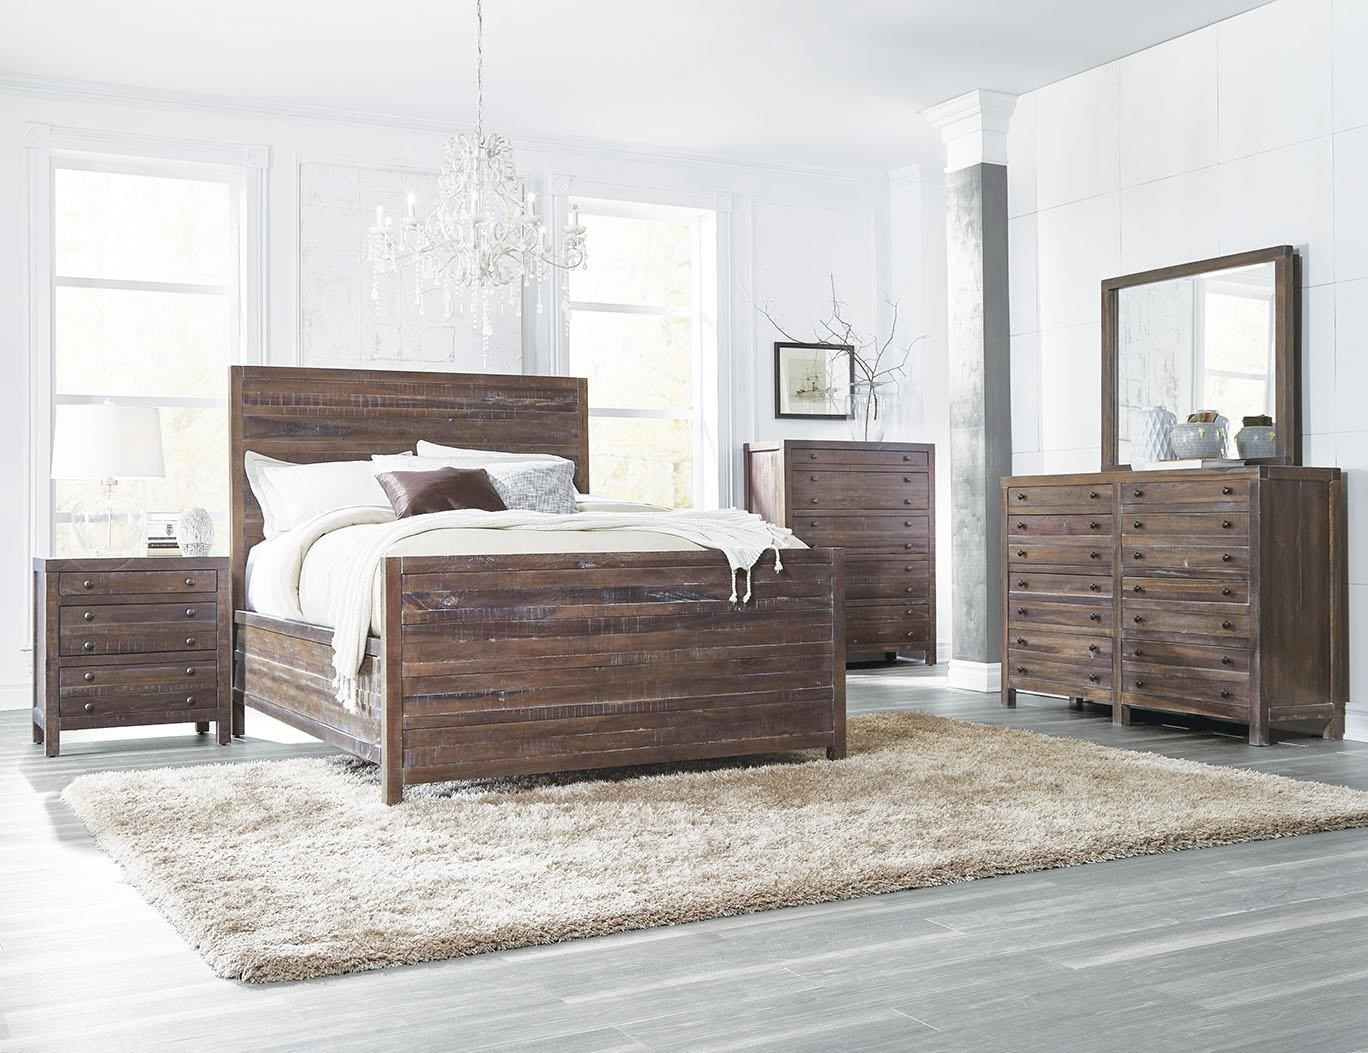 Modus International TrentonKing 4 Piece Bedroom Set